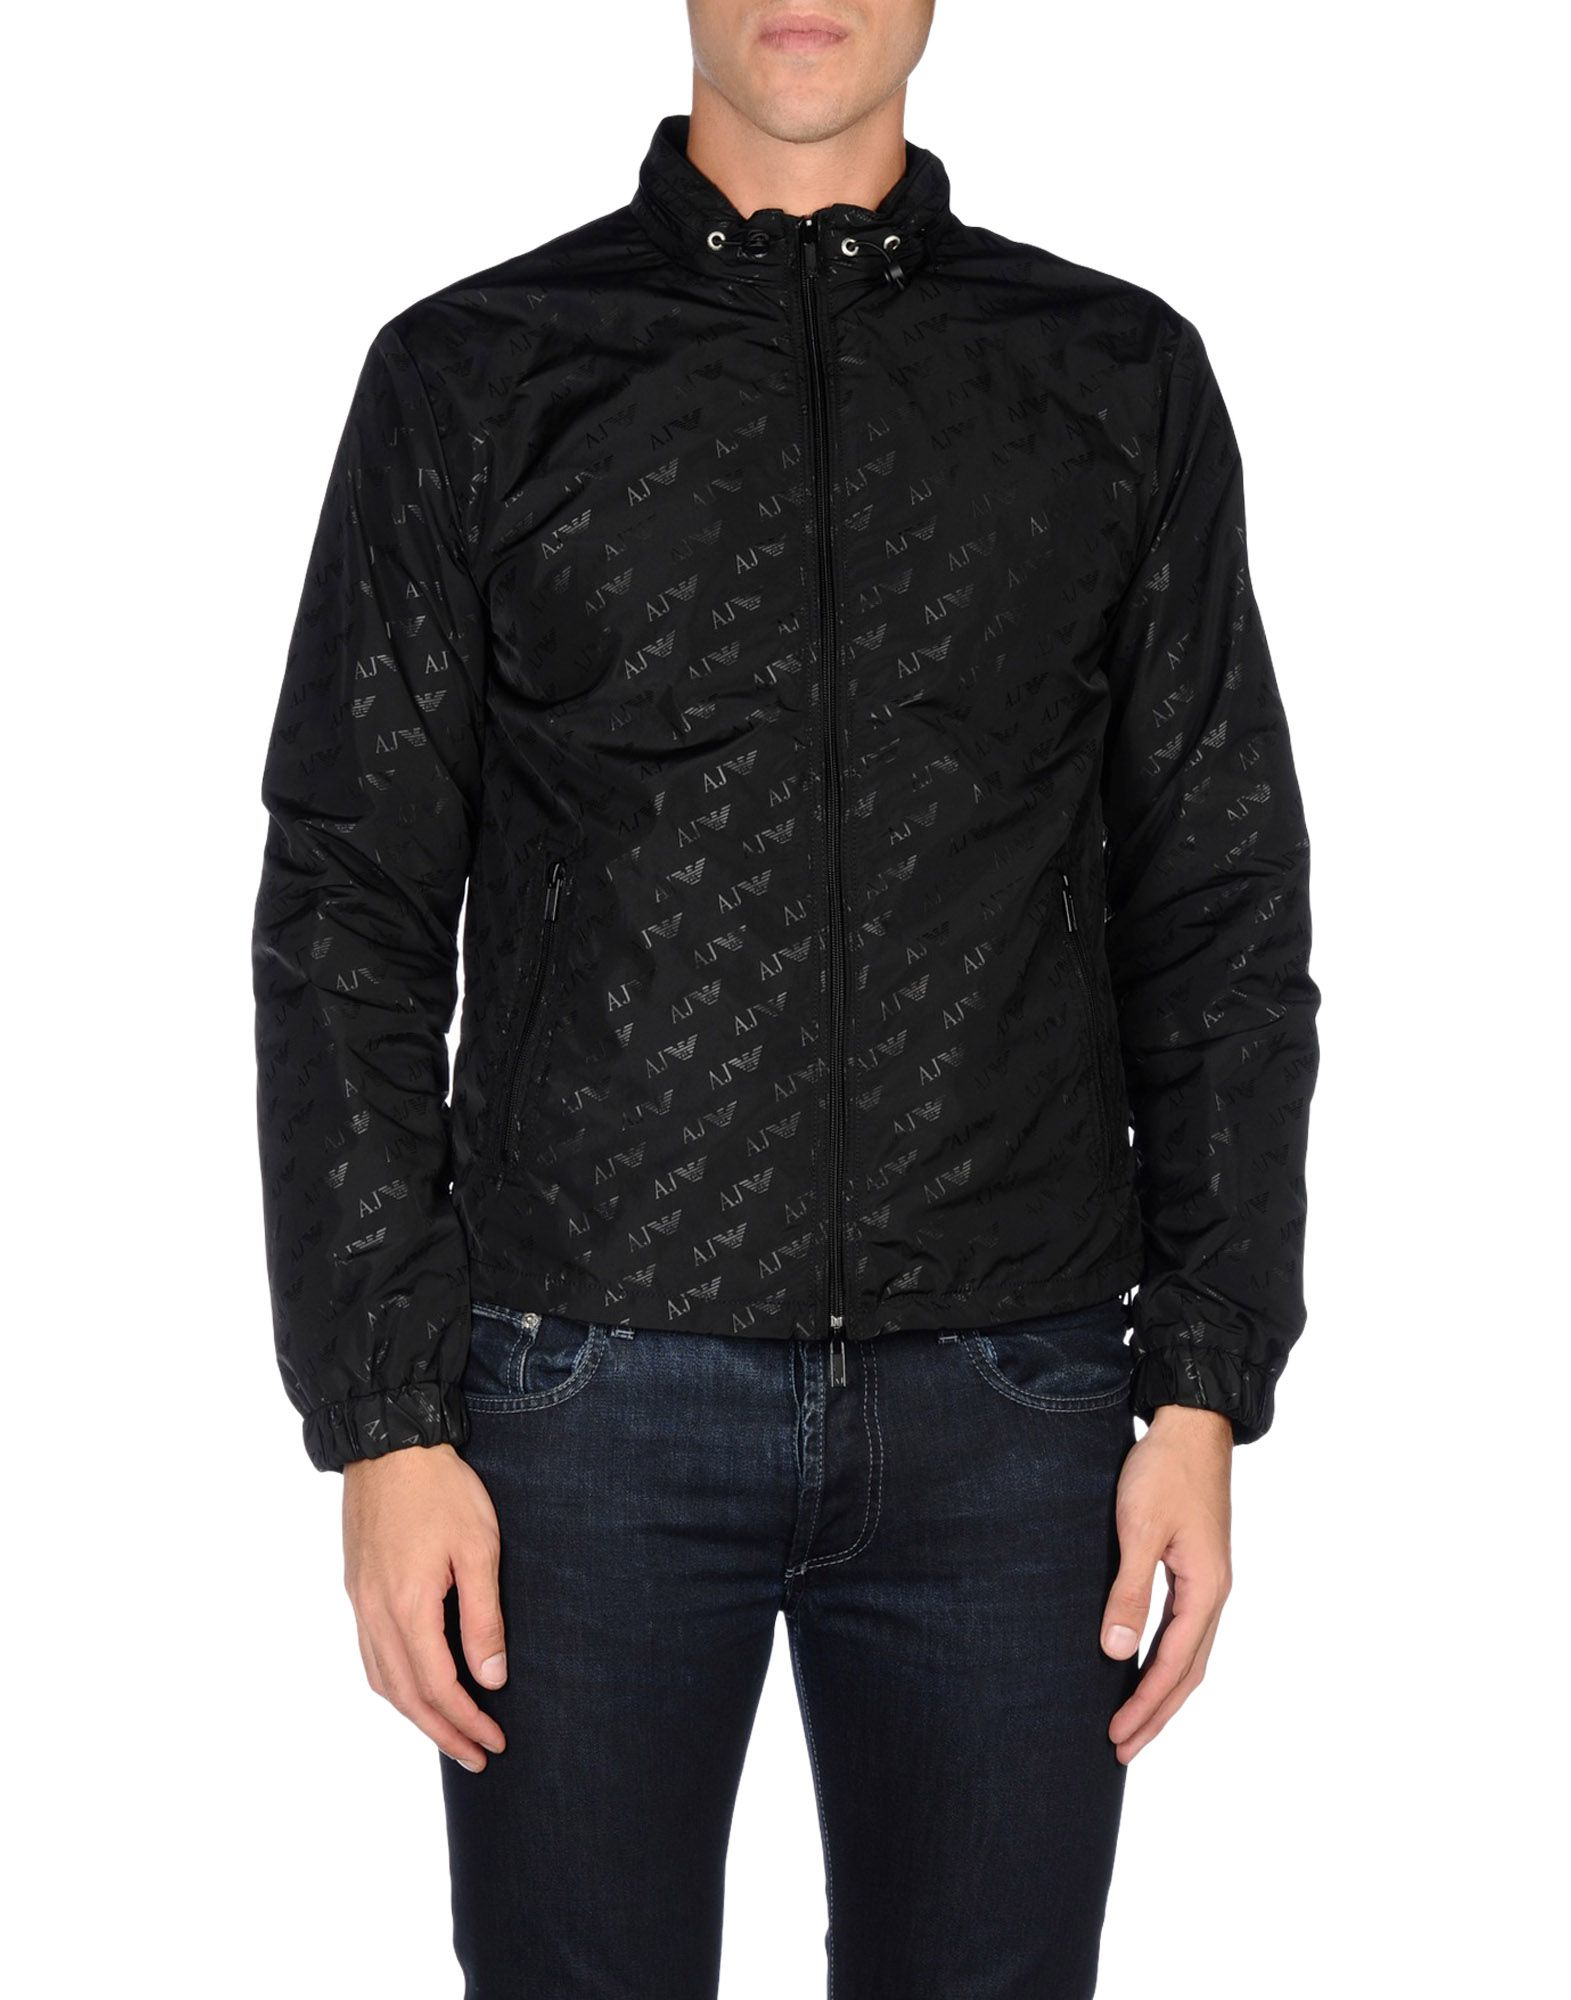 lyst armani jeans jacket in black for men. Black Bedroom Furniture Sets. Home Design Ideas